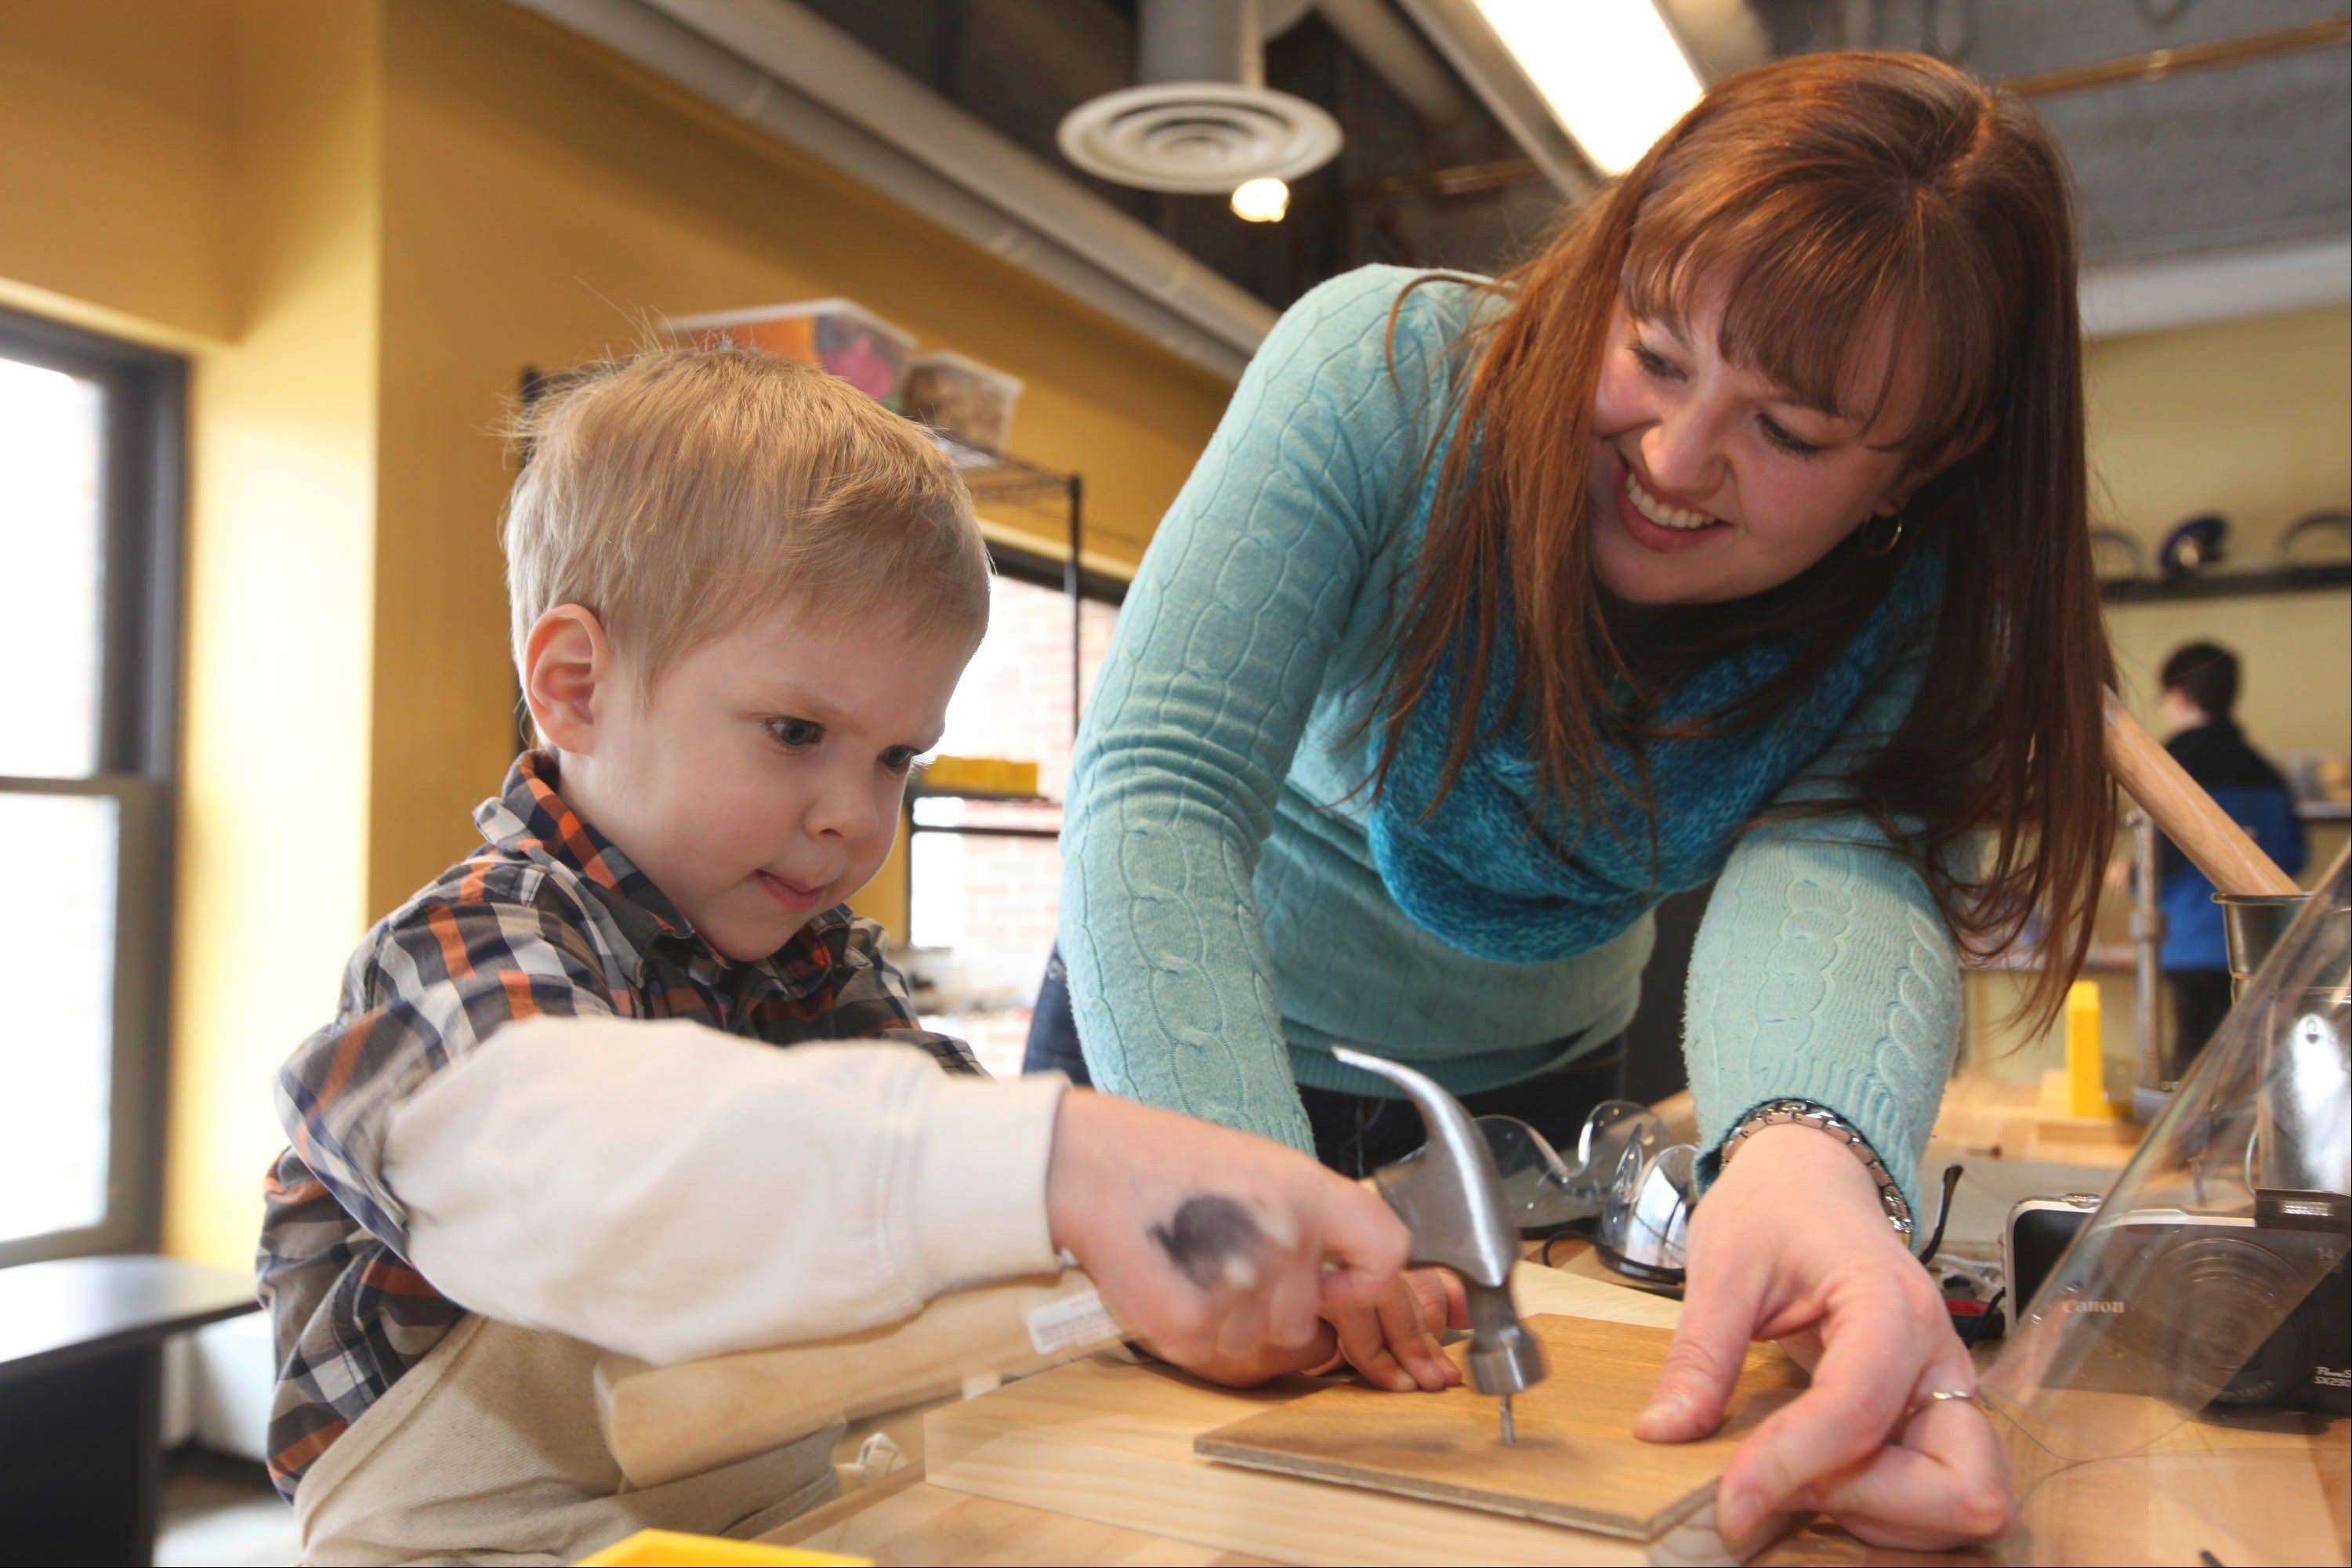 With the help of an adult, children get a chance to try out tools in the Tinkering Lab at the Chicago Children's Museum.